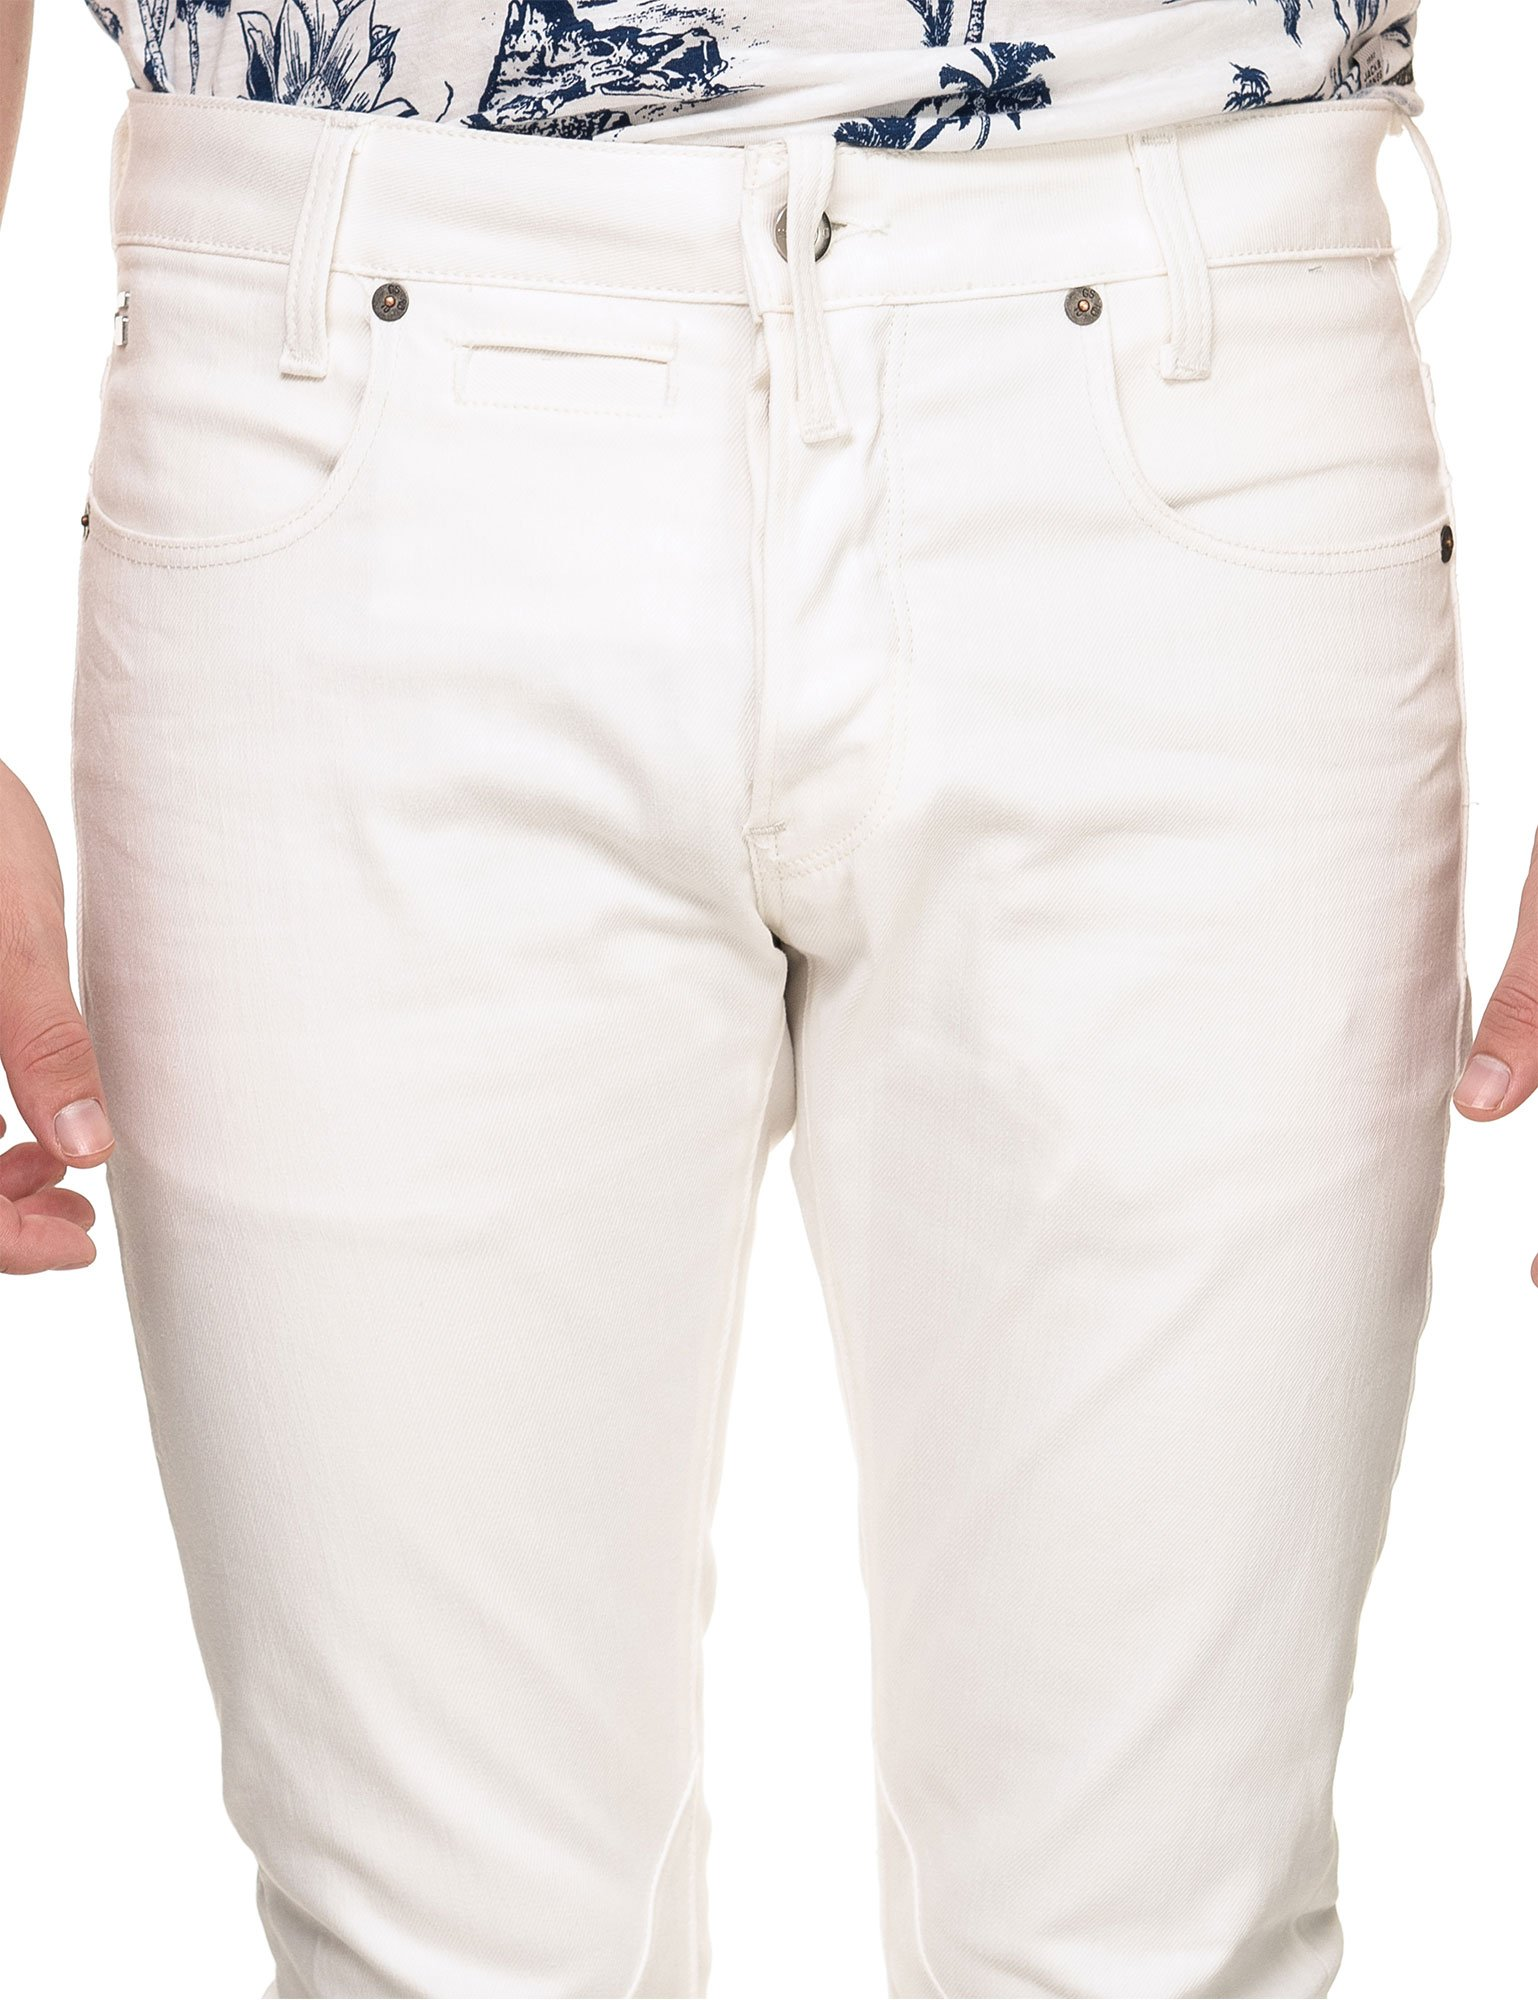 G-STAR Men's D-STAQ 5-Pkt Slim Pants White in Size 30W 32L by G-STAR (Image #3)